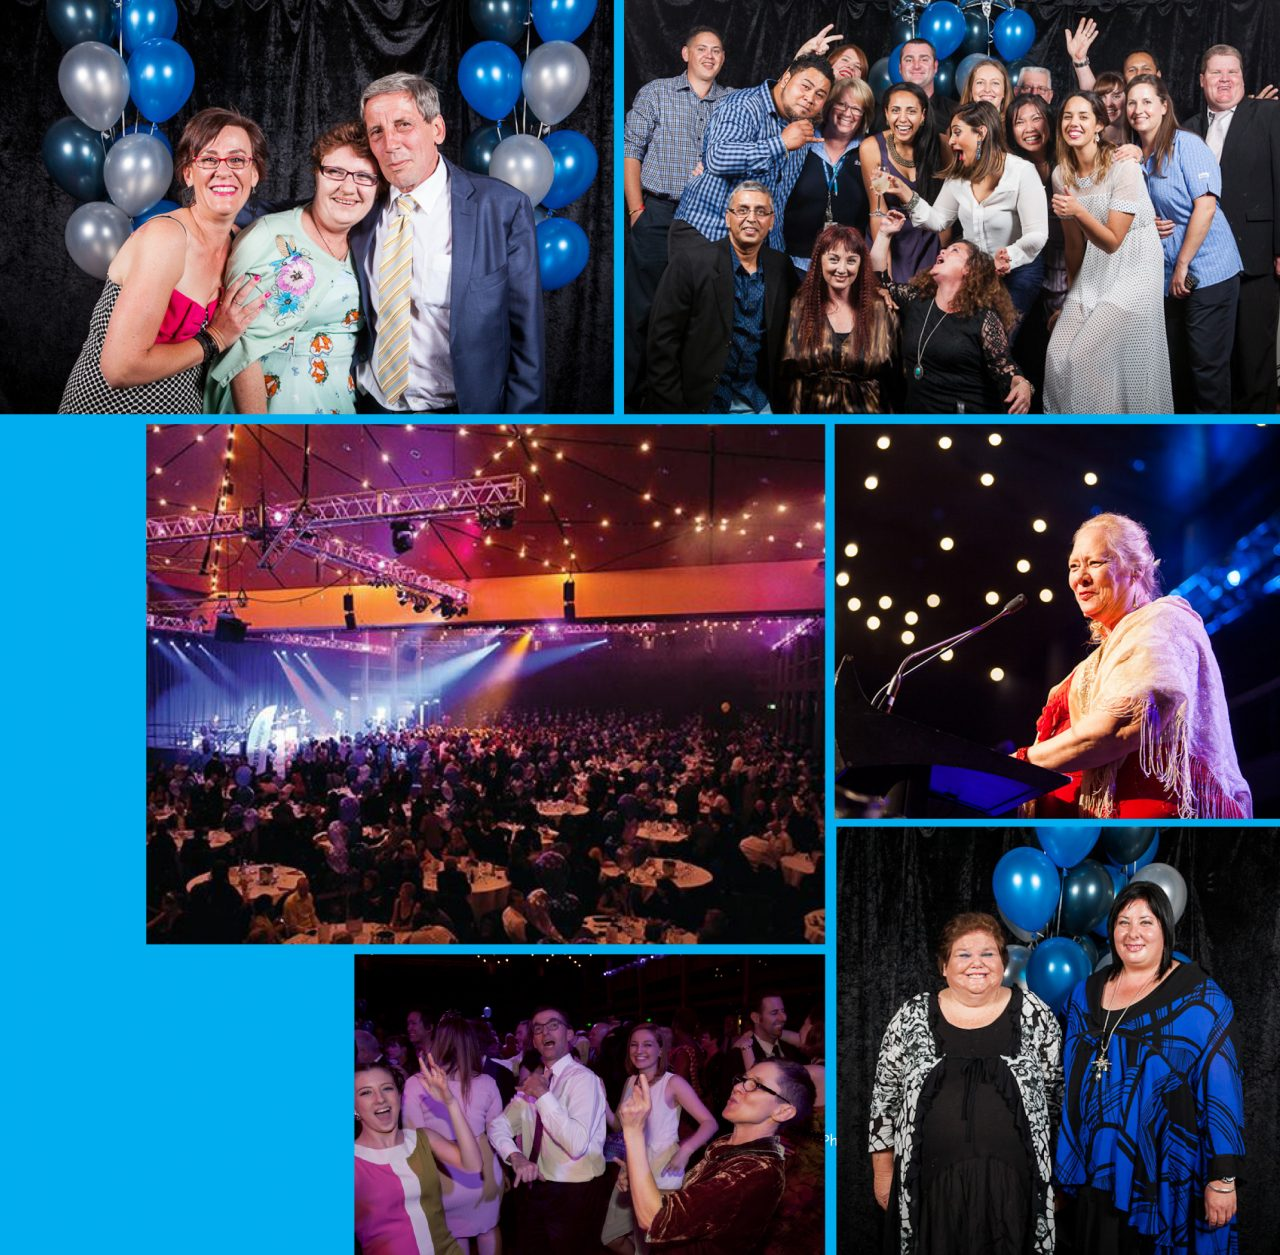 Moonlight Magic Dinner Dance is one of the only gala events in Brisbane which is truly inclusive of the broad spectrum of our community. It is a night of glamour and fun where the dance floor is packed from the beginning of the night till the end.